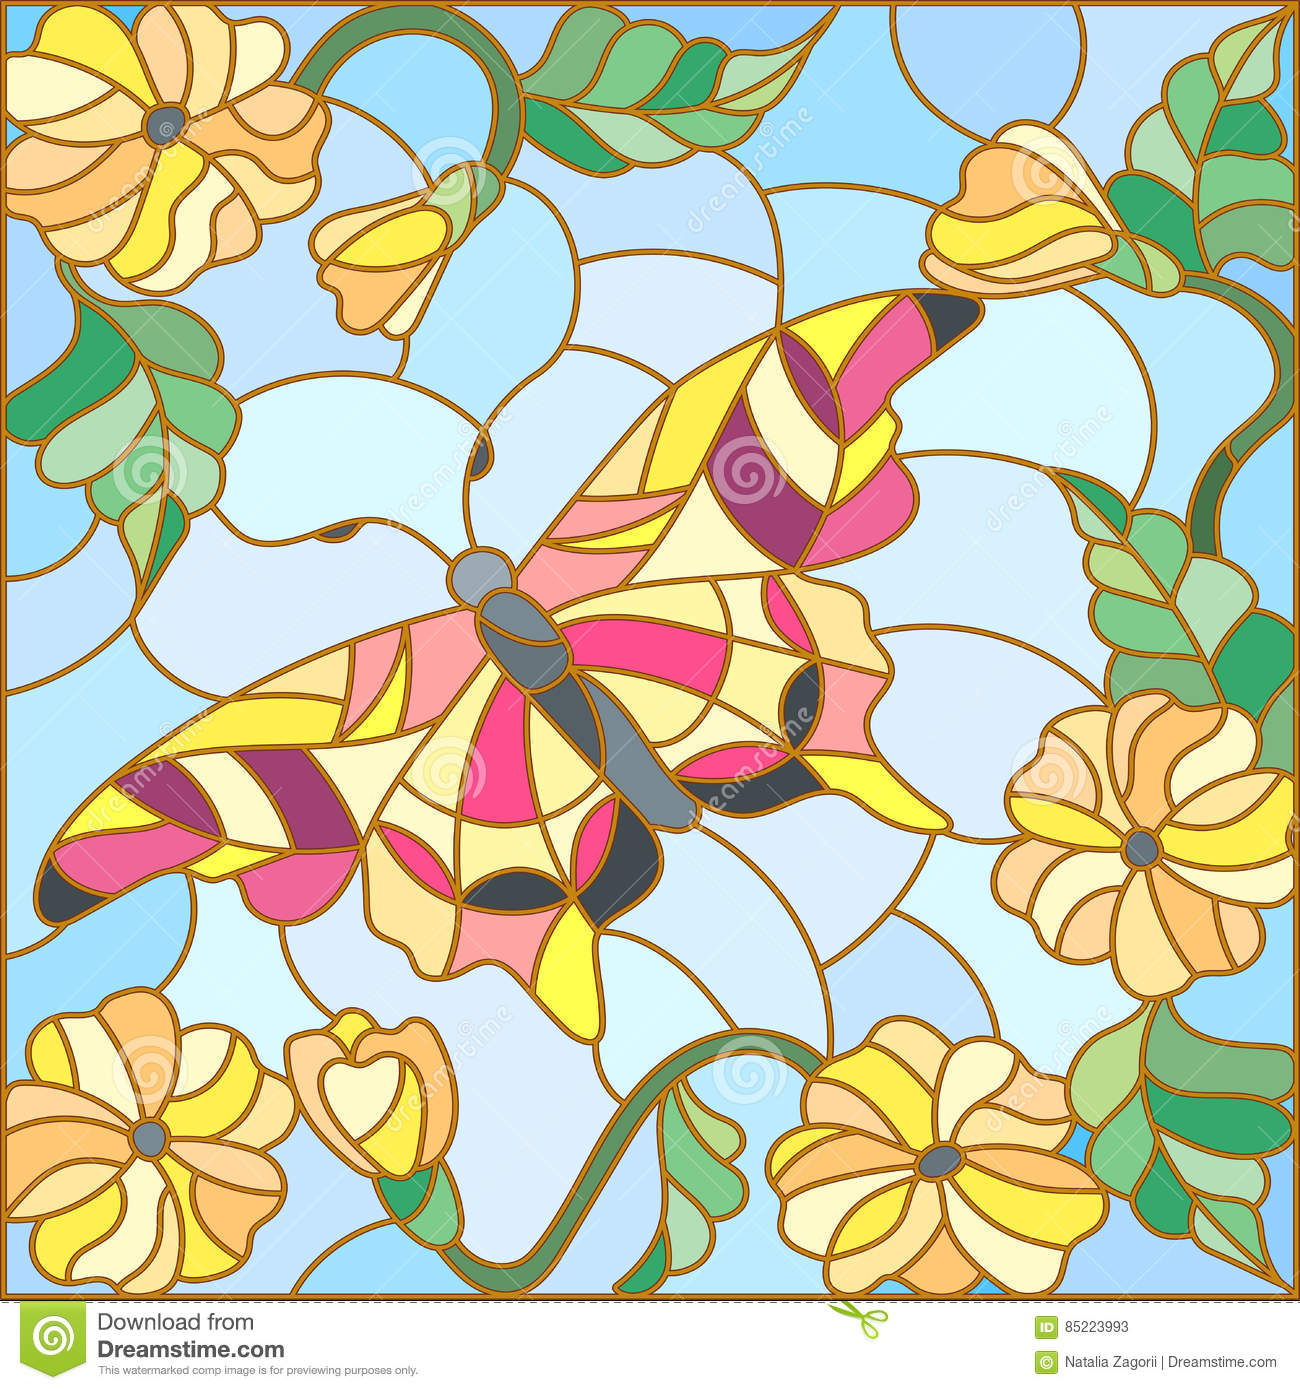 Stained glass illustration with bright butterfly against the sky, foliage and flowers